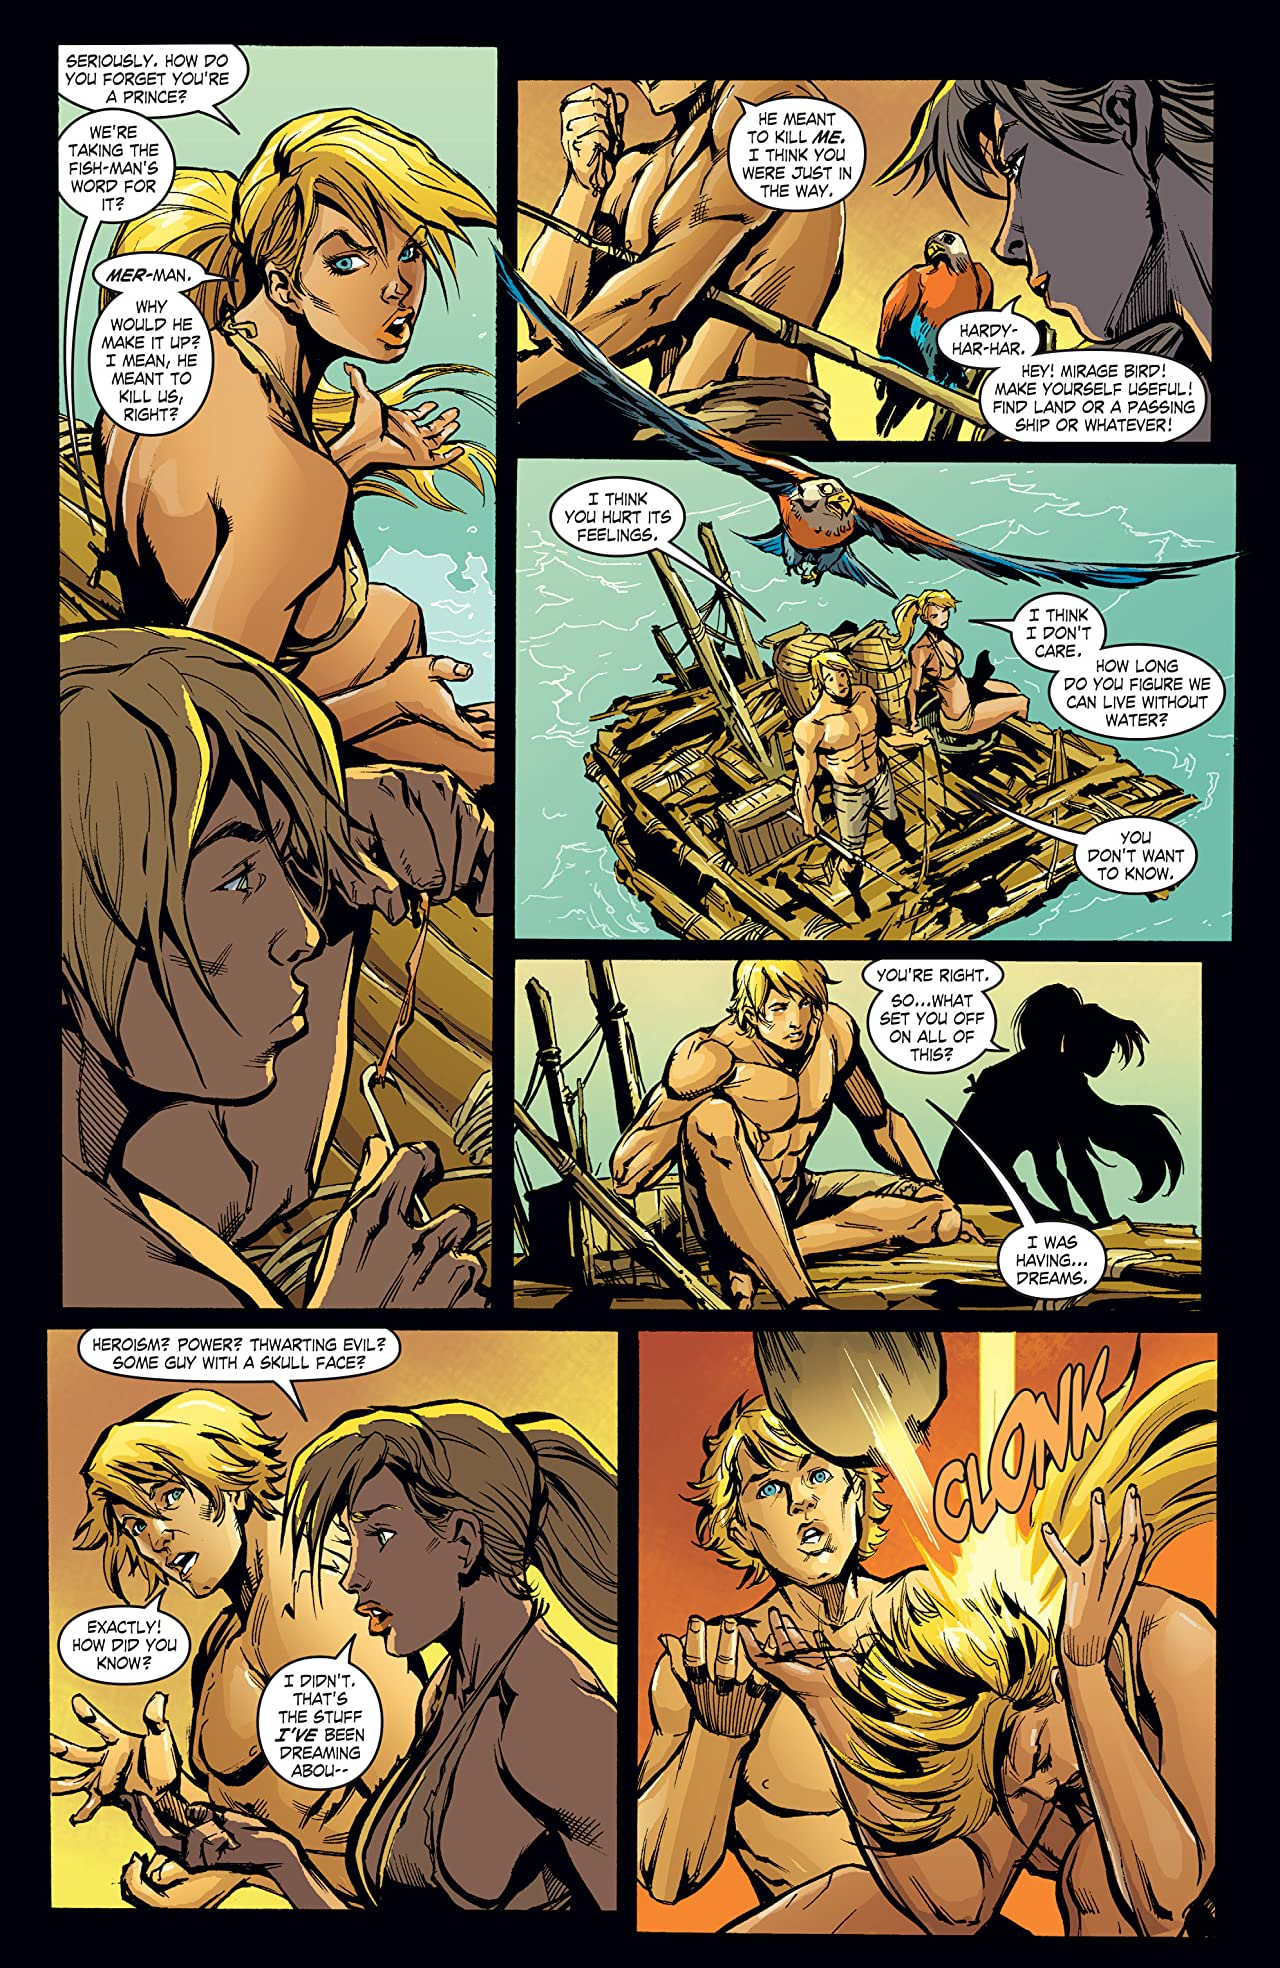 He-Man and the Masters of the Universe #4 (of 6)